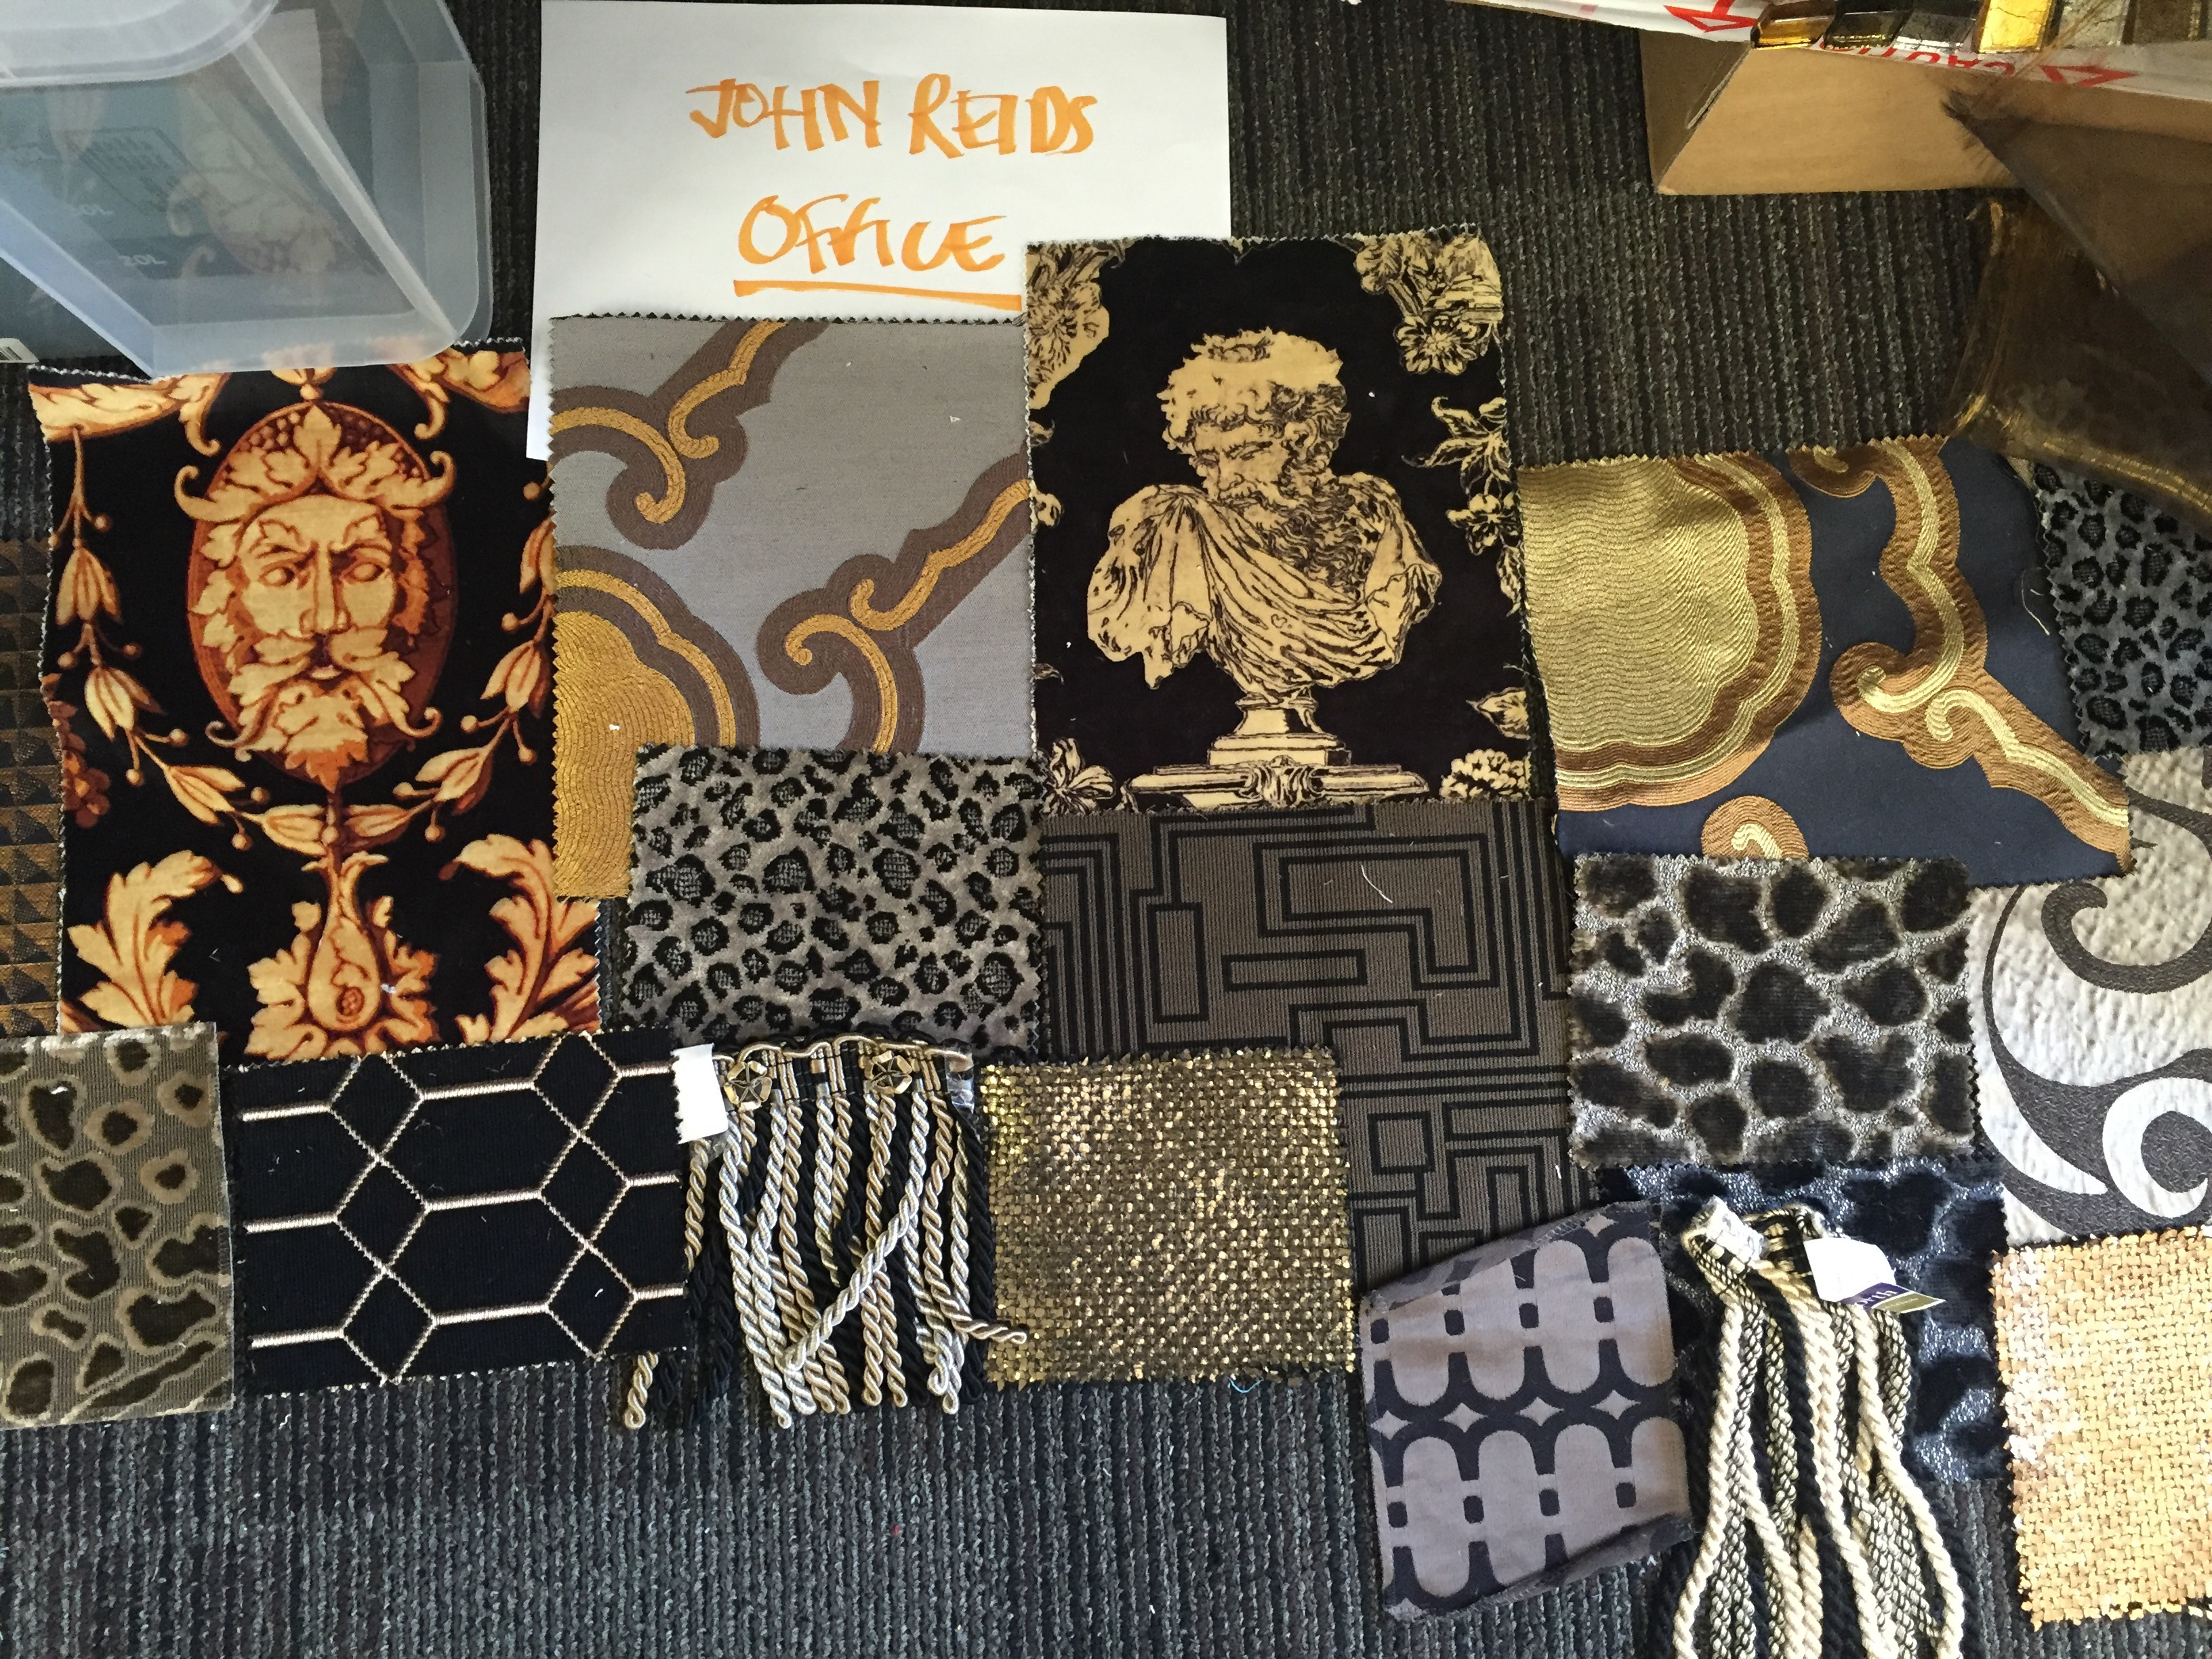 Mood board and samples for John Reid's office in Rocketman filmsets